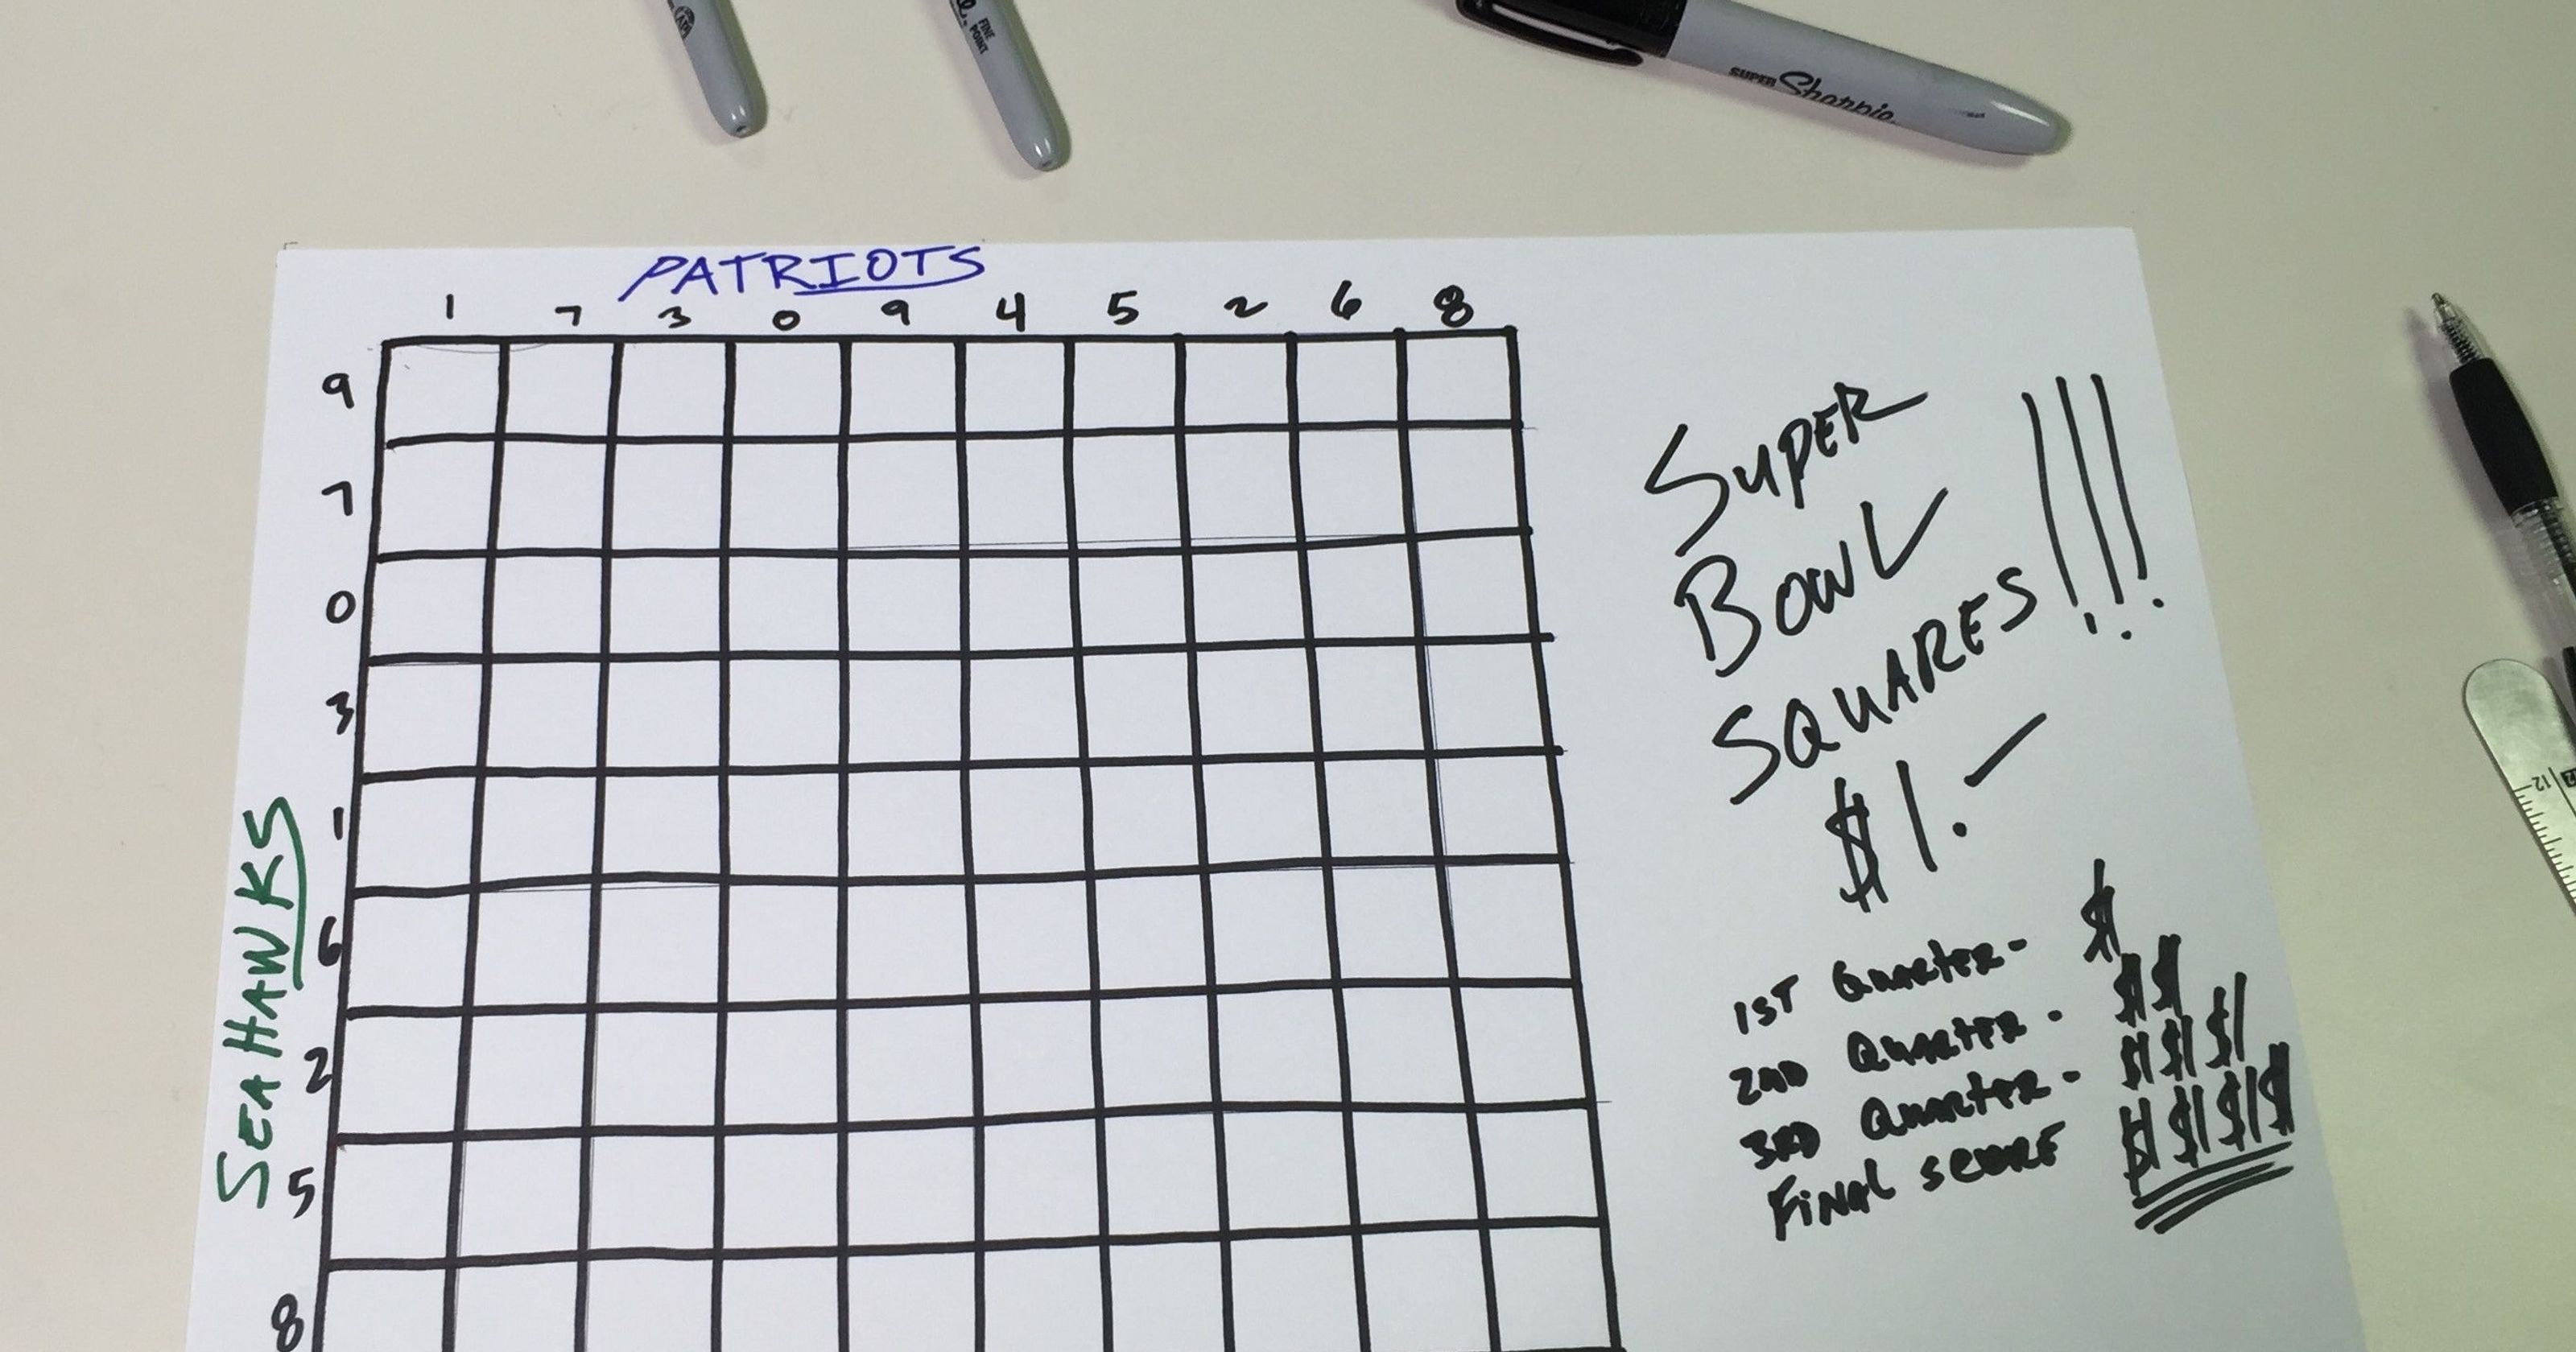 Super Bowl Squares A Primer Template For Playing In